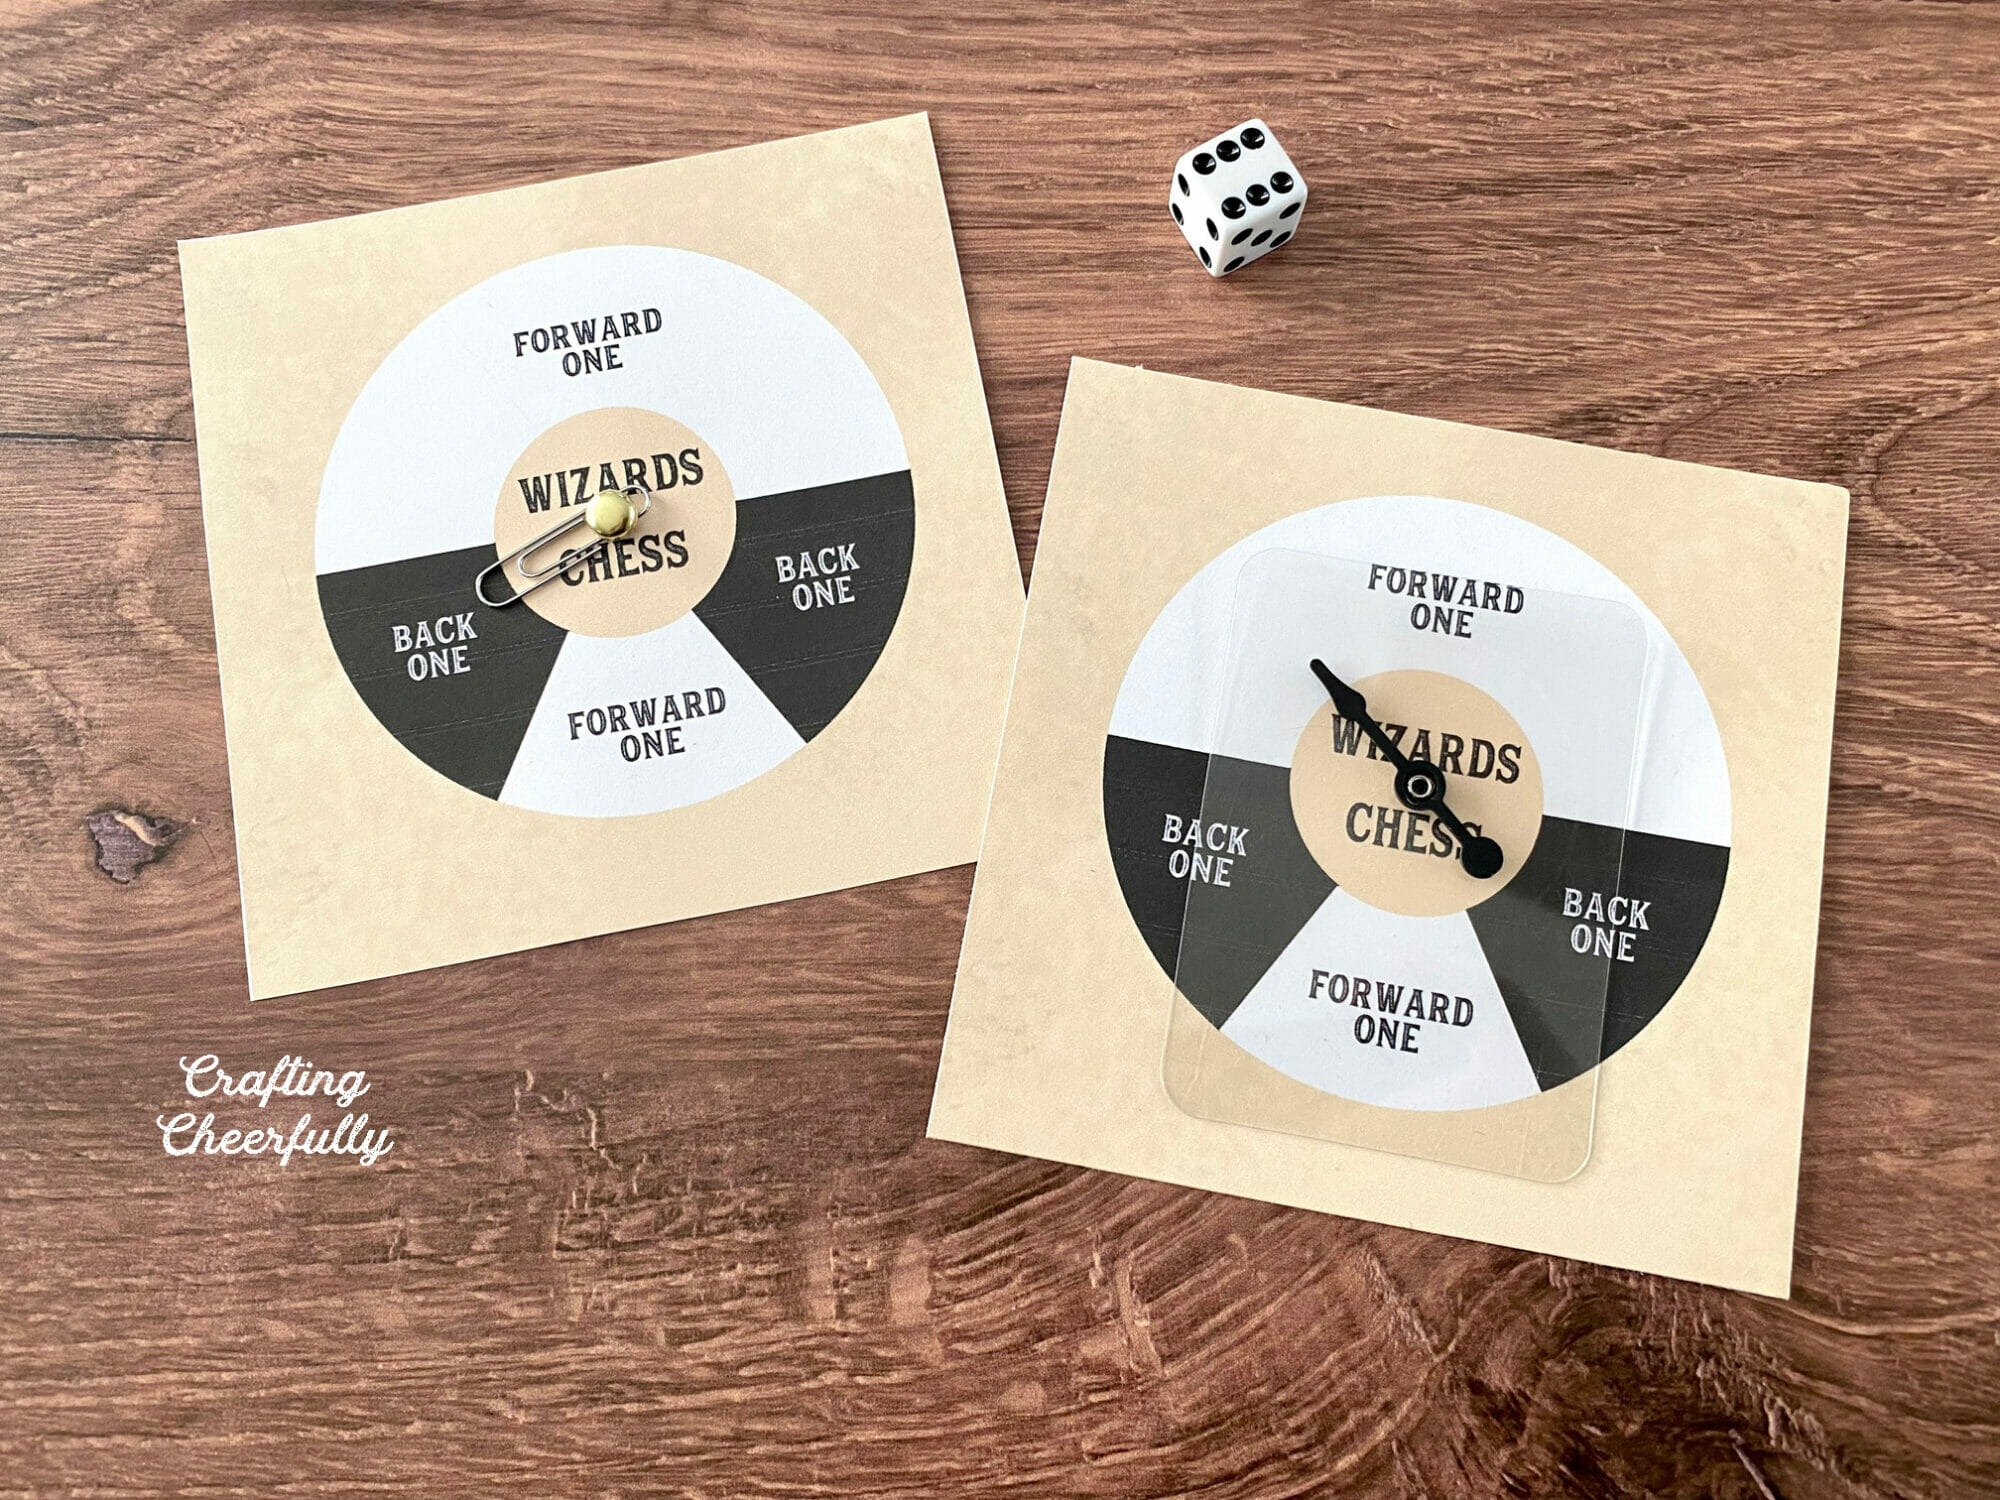 Two printable game spinner lay next to a dice on a wooden table.